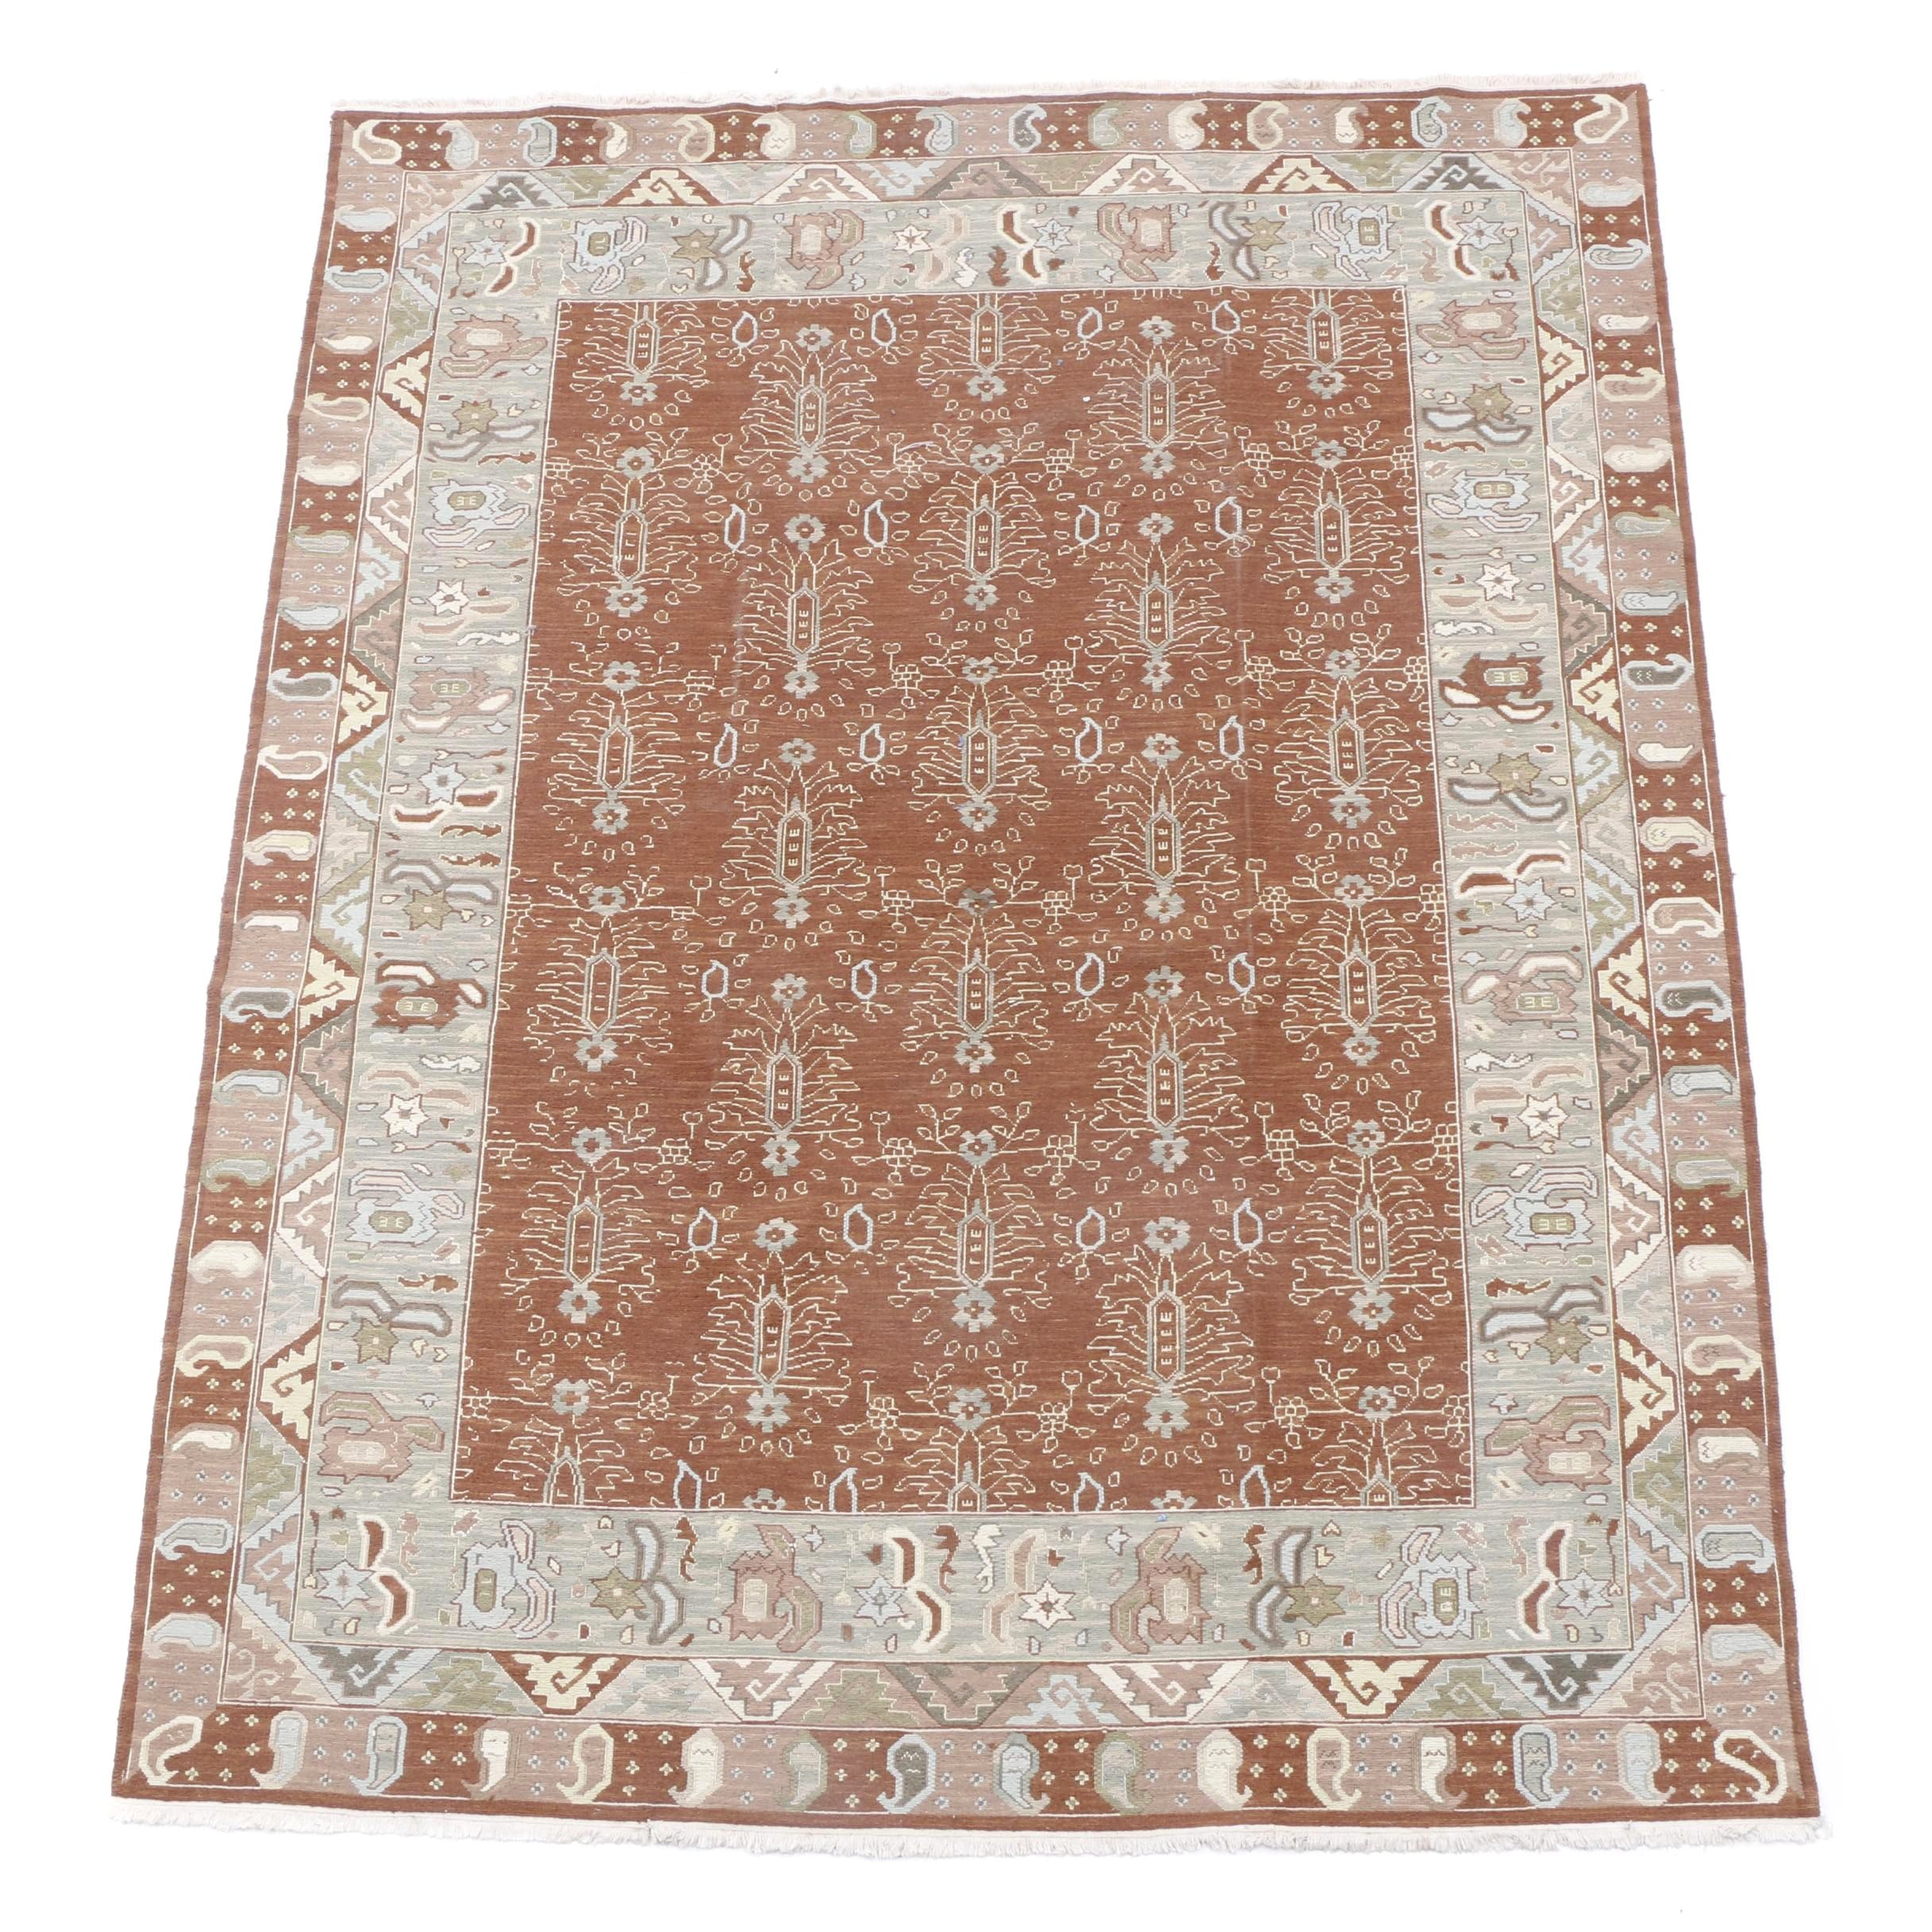 Hand-Knotted Indian Jaipur Wool Area Rug